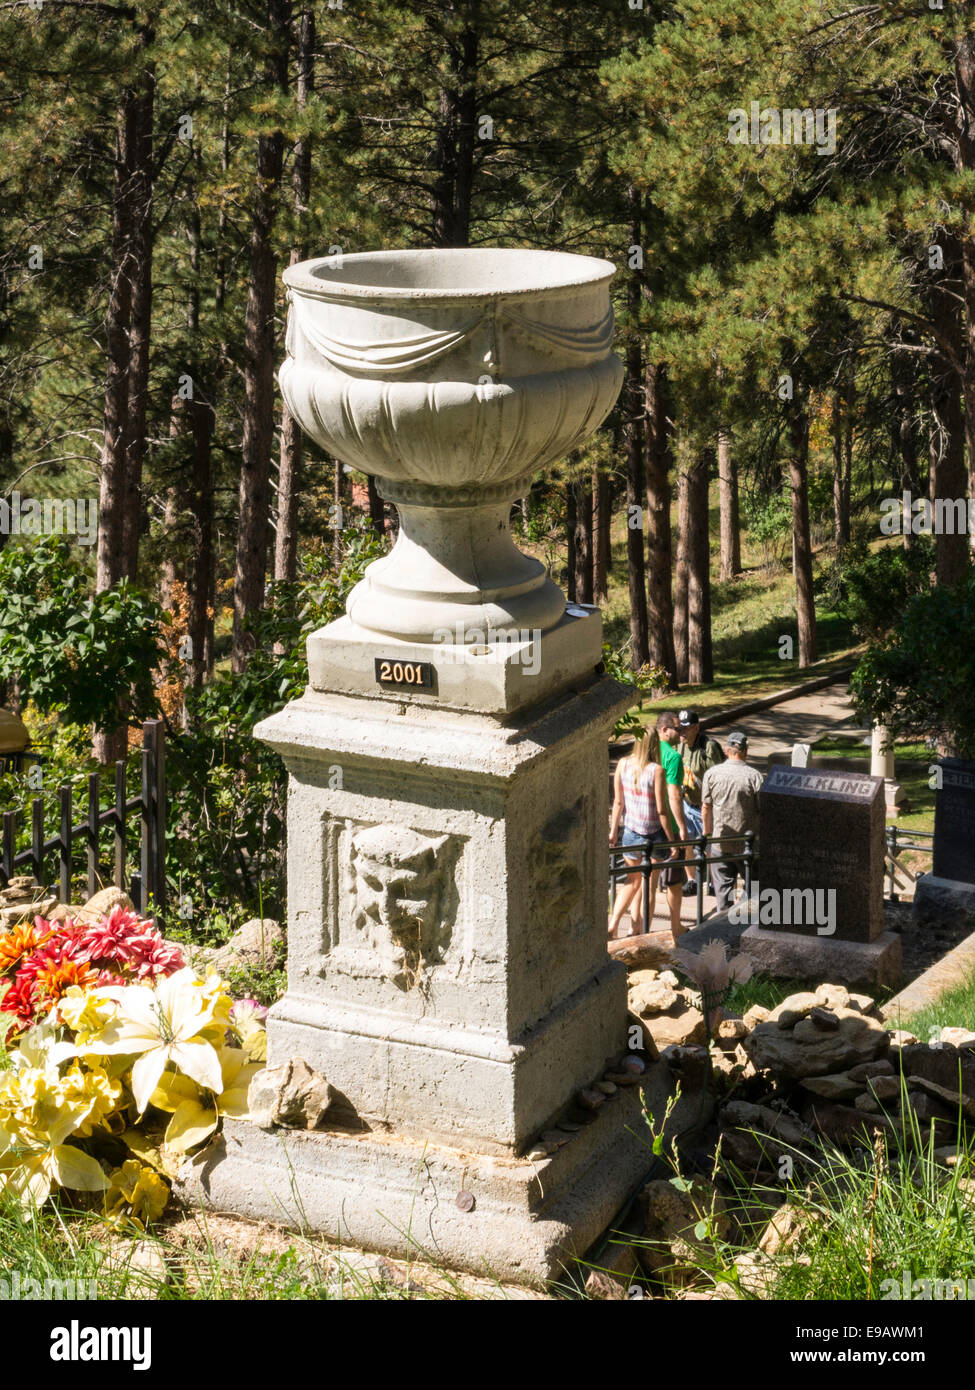 Urn Graves At The Cemetery Stock Photos & Urn Graves At The Cemetery ...